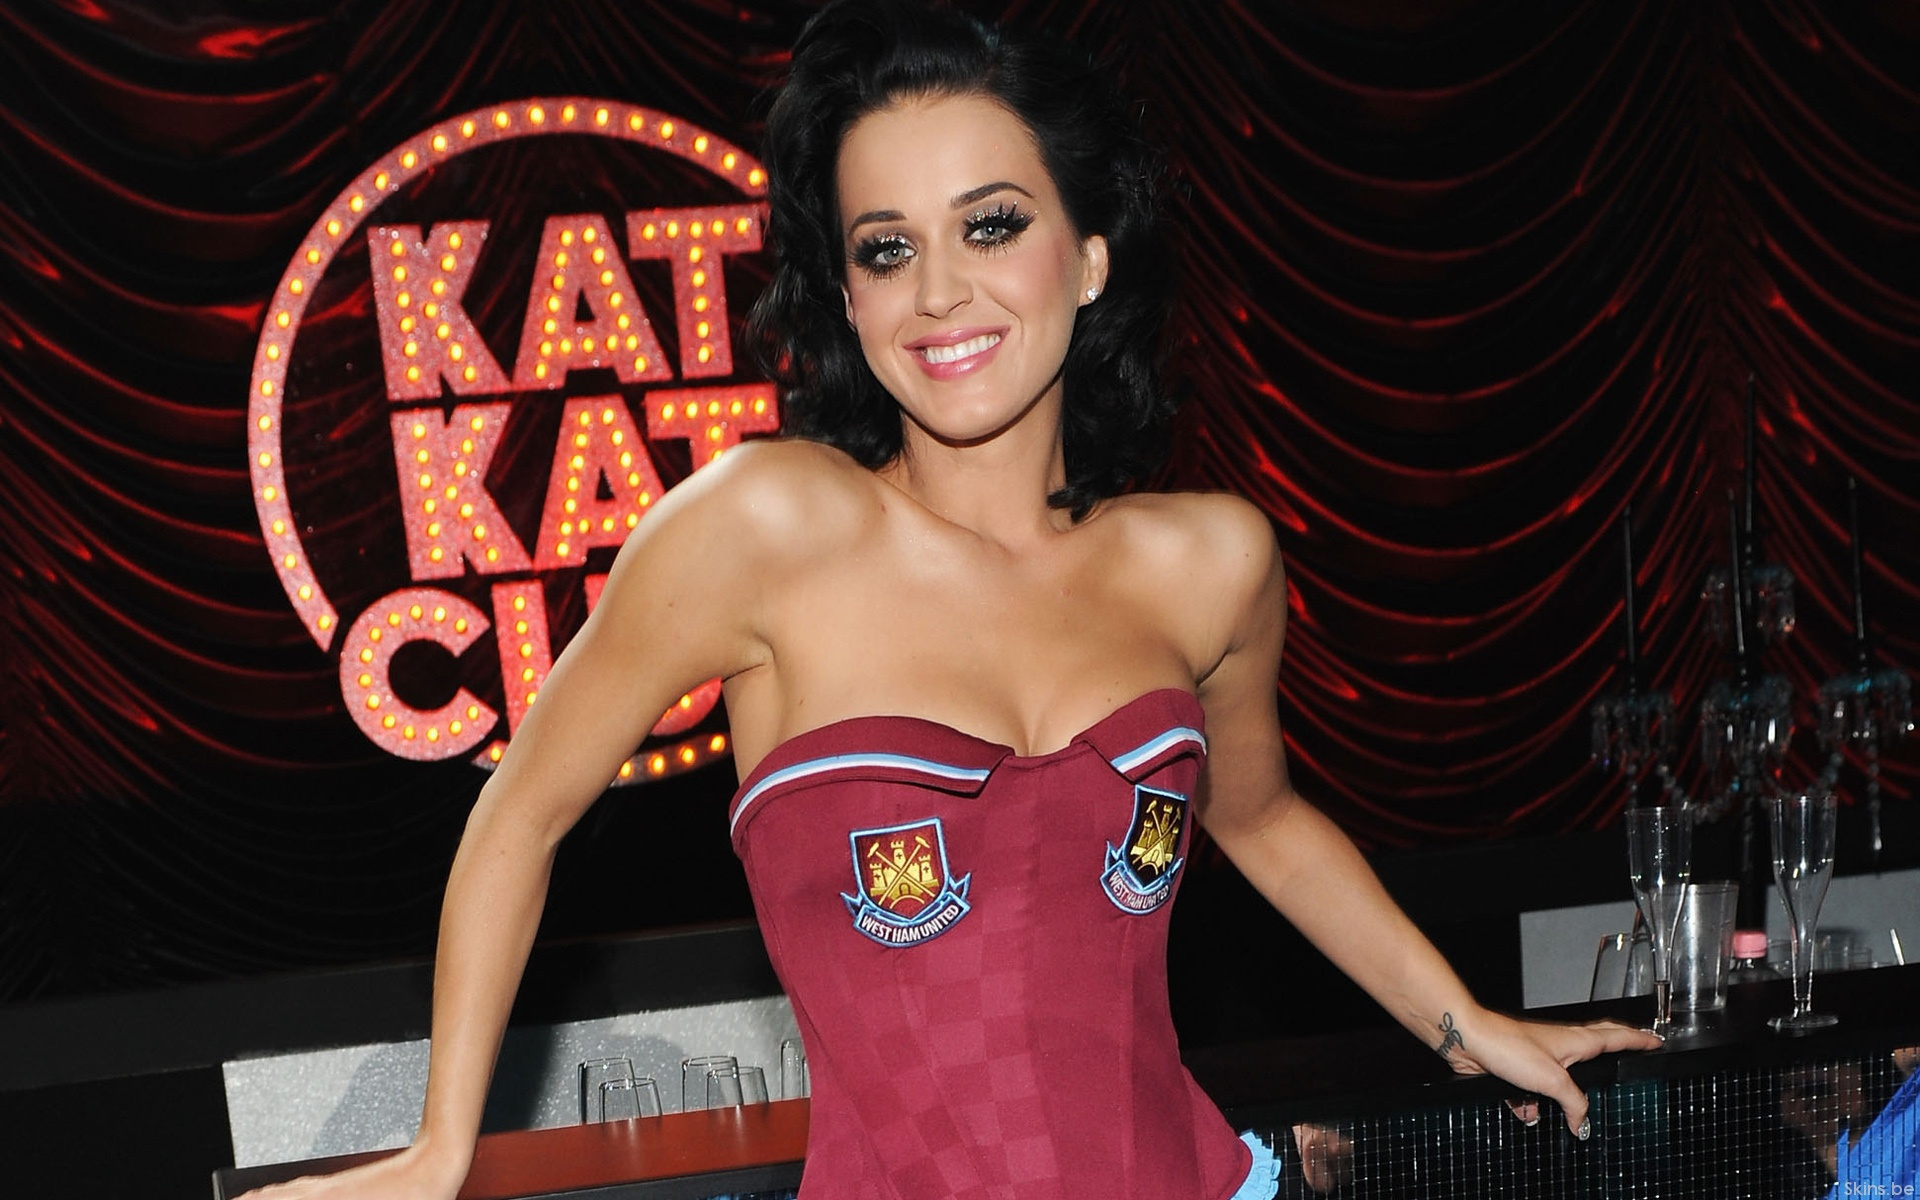 Katy Perry sonriendo - 1920x1200